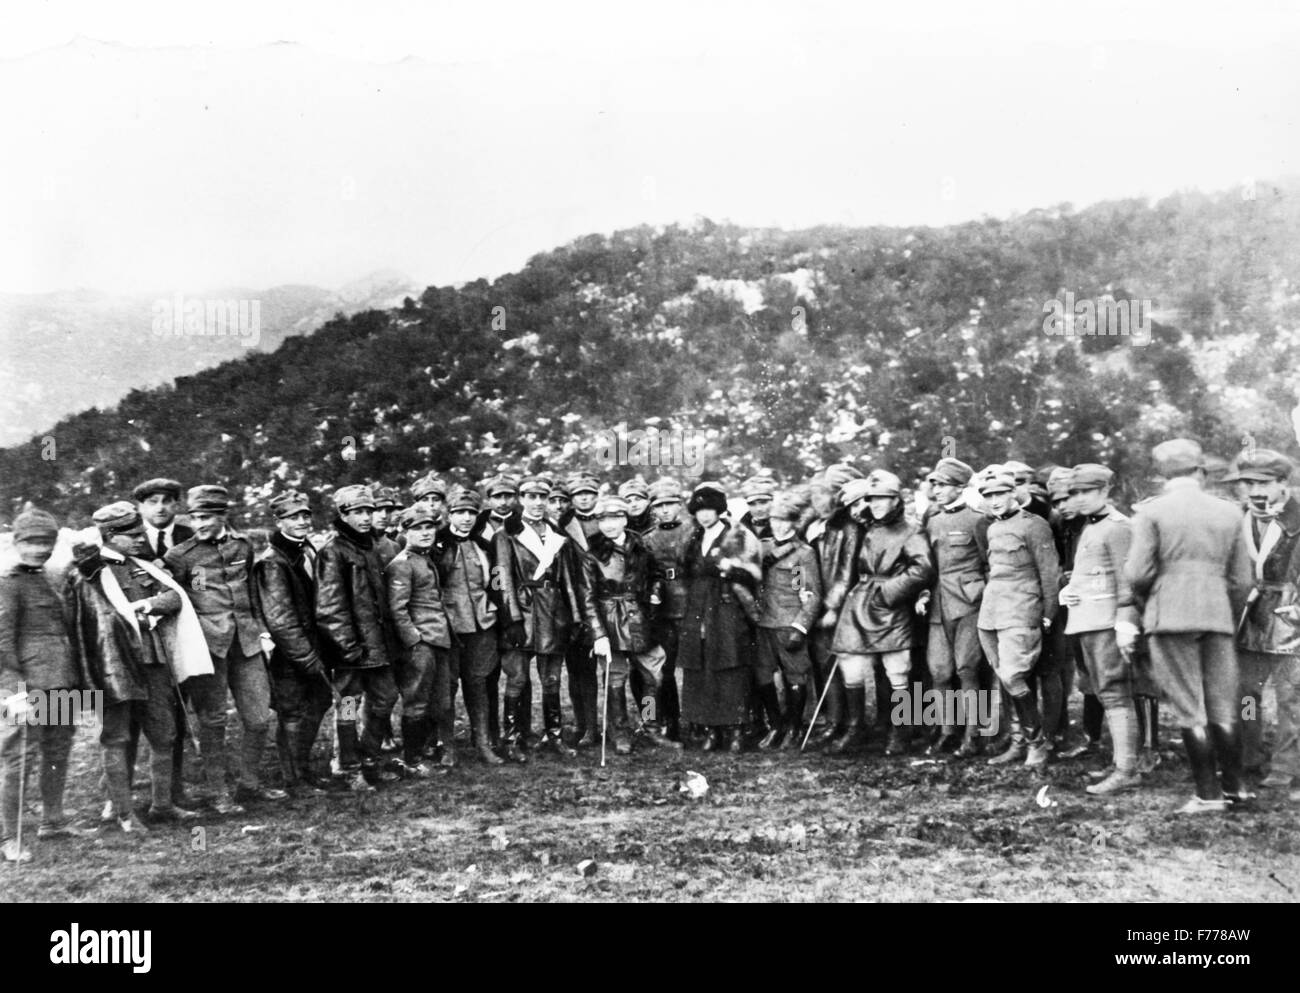 Gabriele D'Annunzio in Fiume with the pilots escaped from the departments on his right the gold medal Eugenio - Stock Image